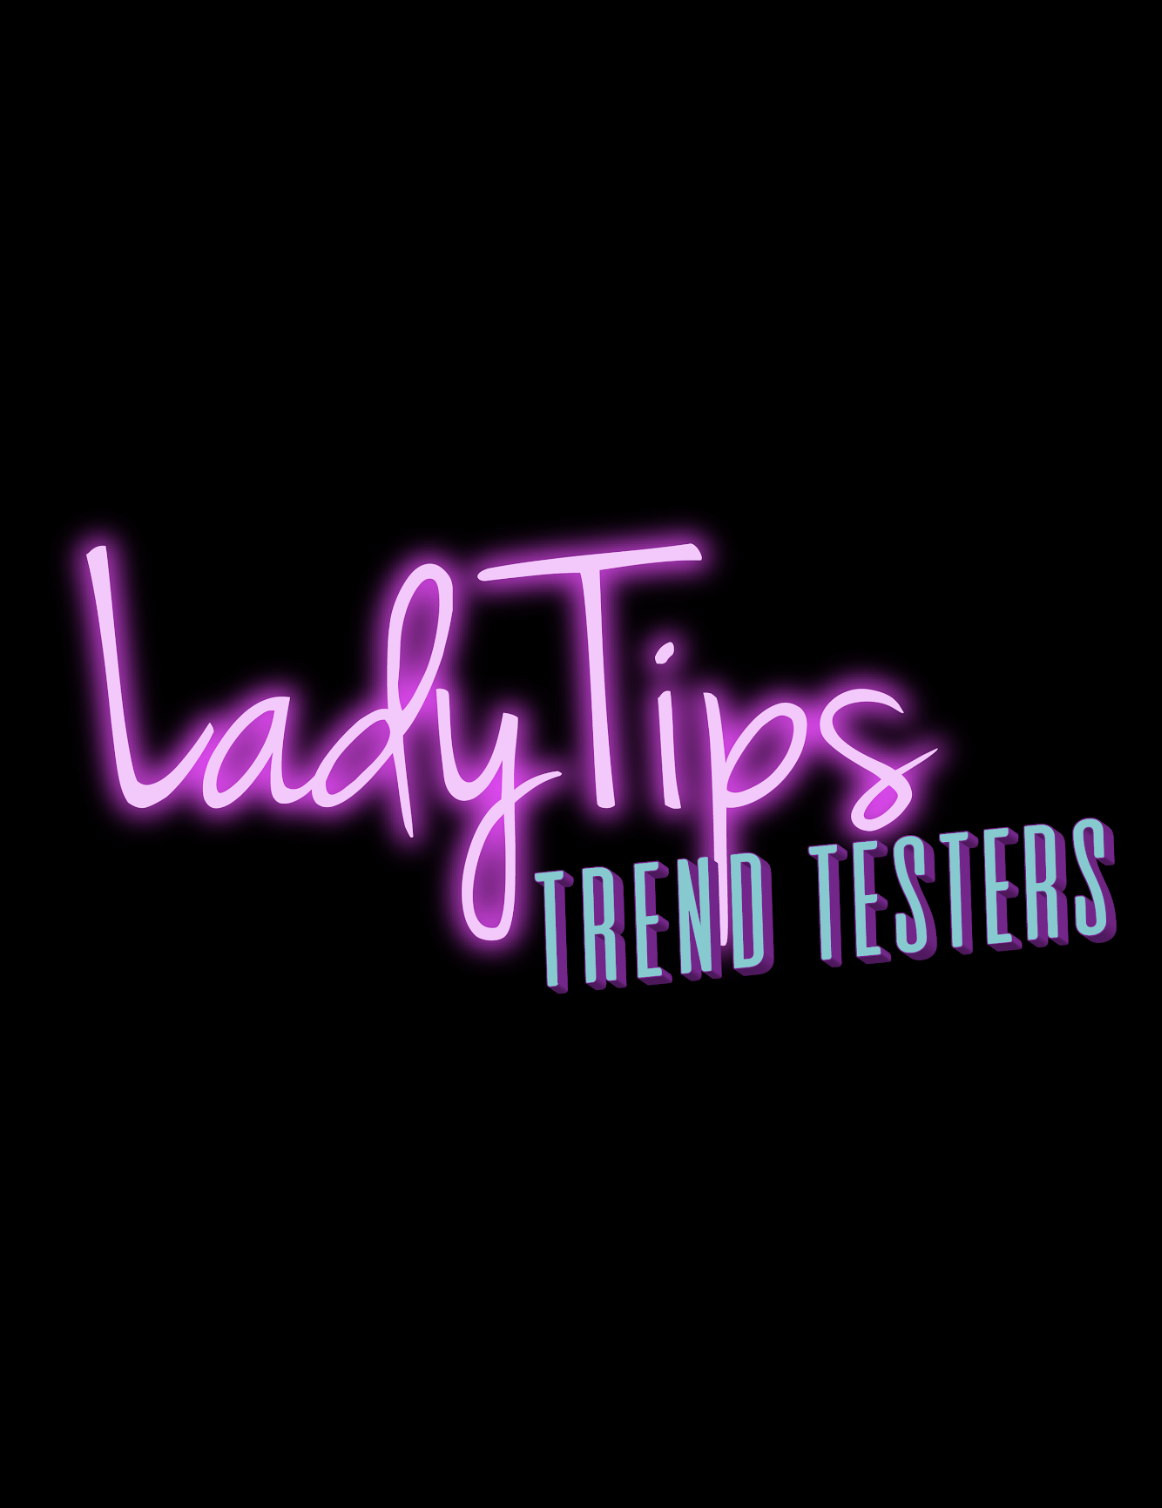 LadyTips - LadyTips is an award winning satirical feminist webseries parodying all of the ridiculous shit that ladies will do to achieve their dream of being airbrush-gorgeous and photoshop-thin. LadyTips is currently in it's second season's festival circuit and recently won Best Sketch Comedy Writing at Baltimore New Media Web Fest and Best Narrative Vlog at Minnesota Webfest.